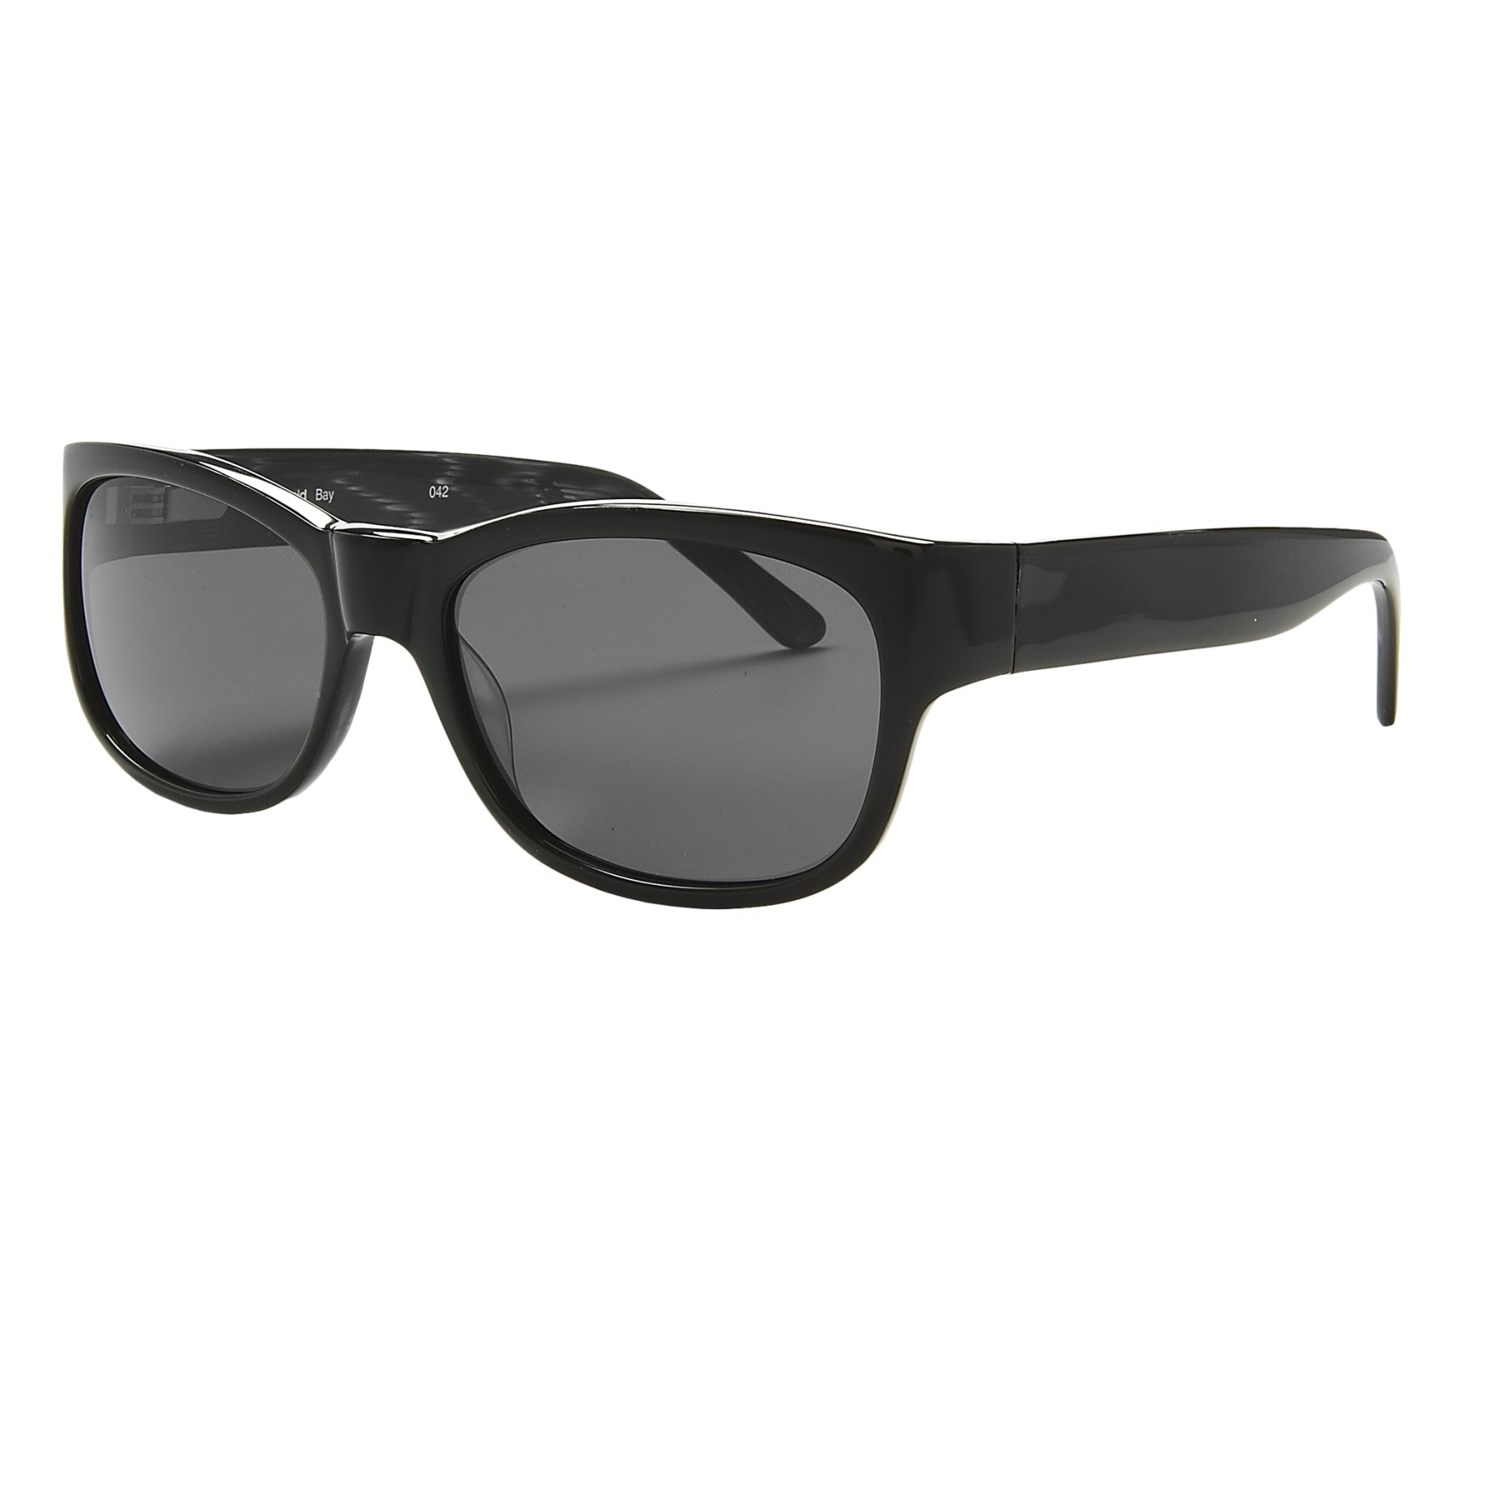 44db63096300 Polaroid Sunglasses Wiki